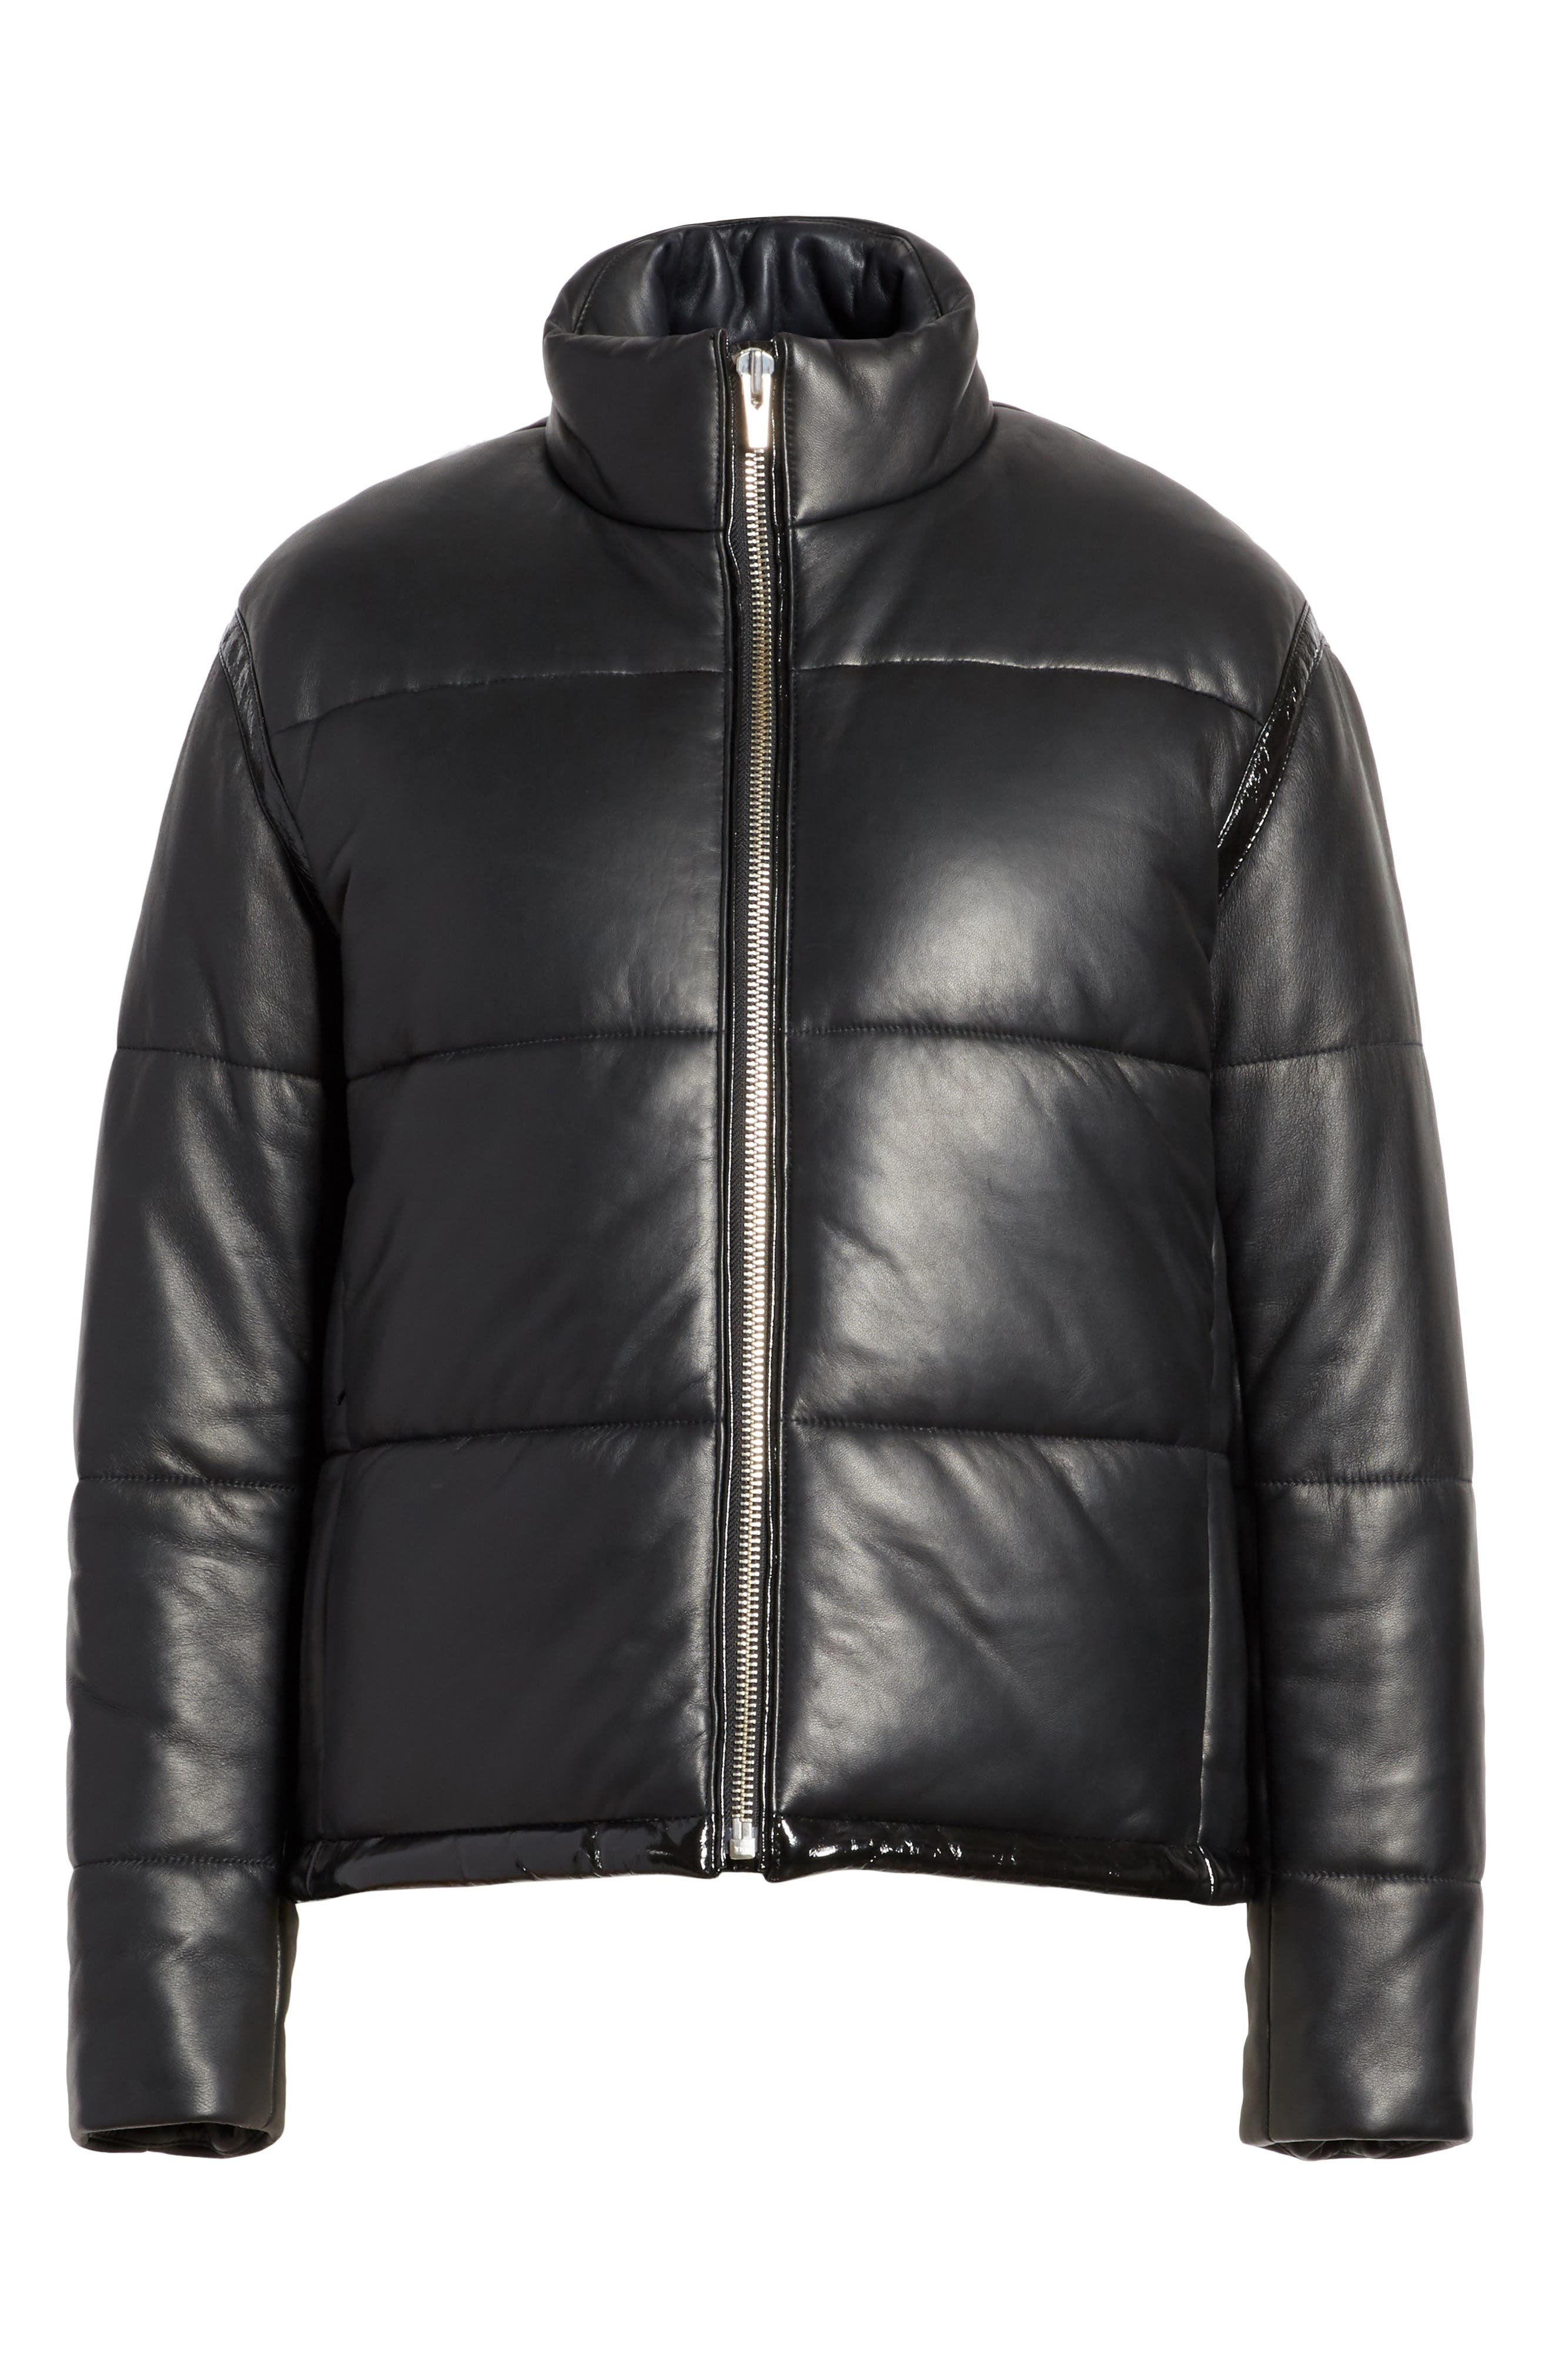 Power Puff Leather Jacket,                             Alternate thumbnail 5, color,                             001